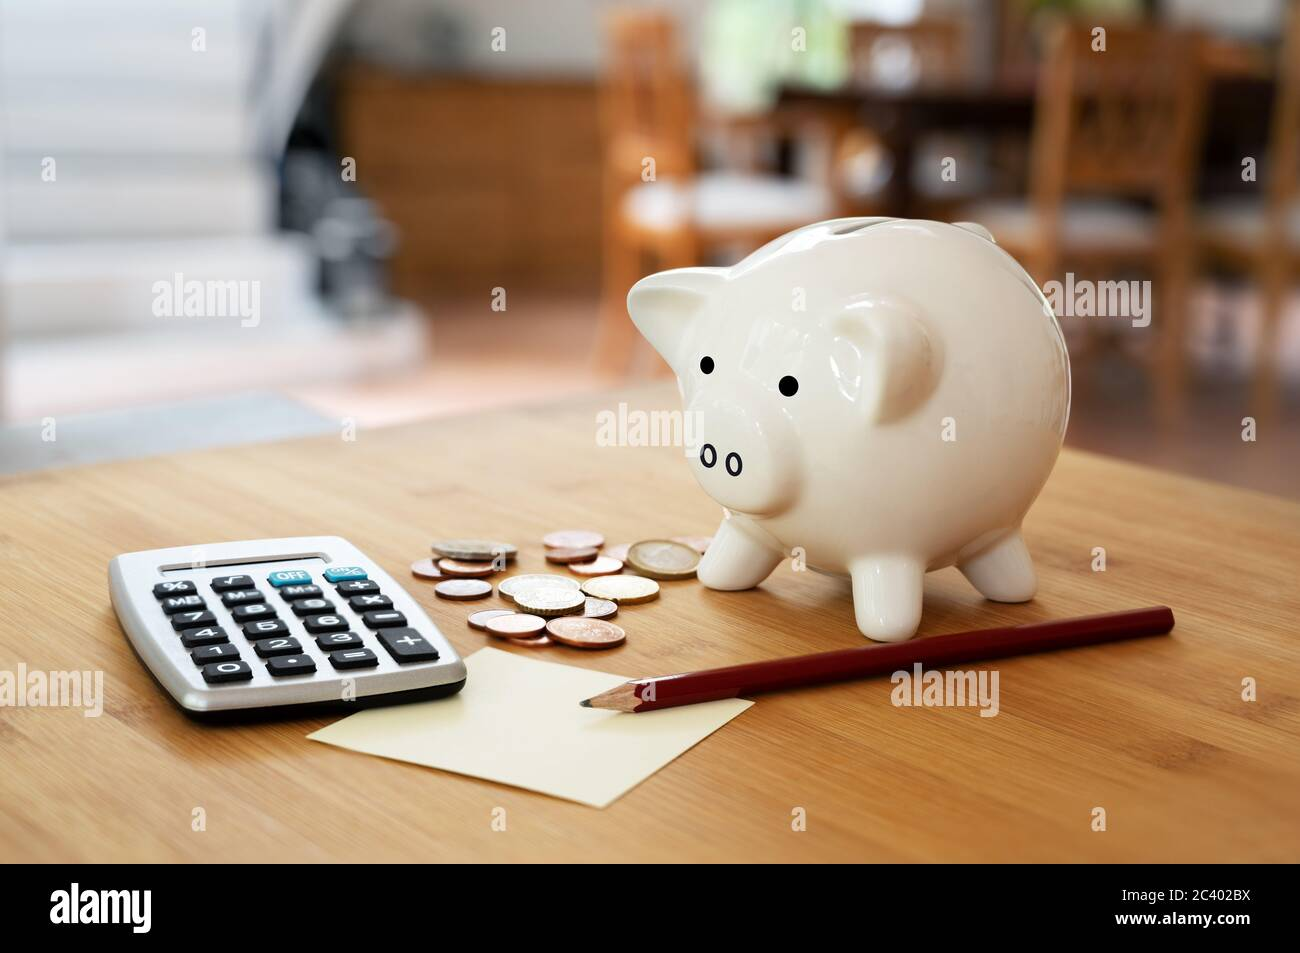 Economy concept, calculator with coins, pencil and a piggy bank on a table in the living room, calculating finances and saving household money, copy s Stock Photo